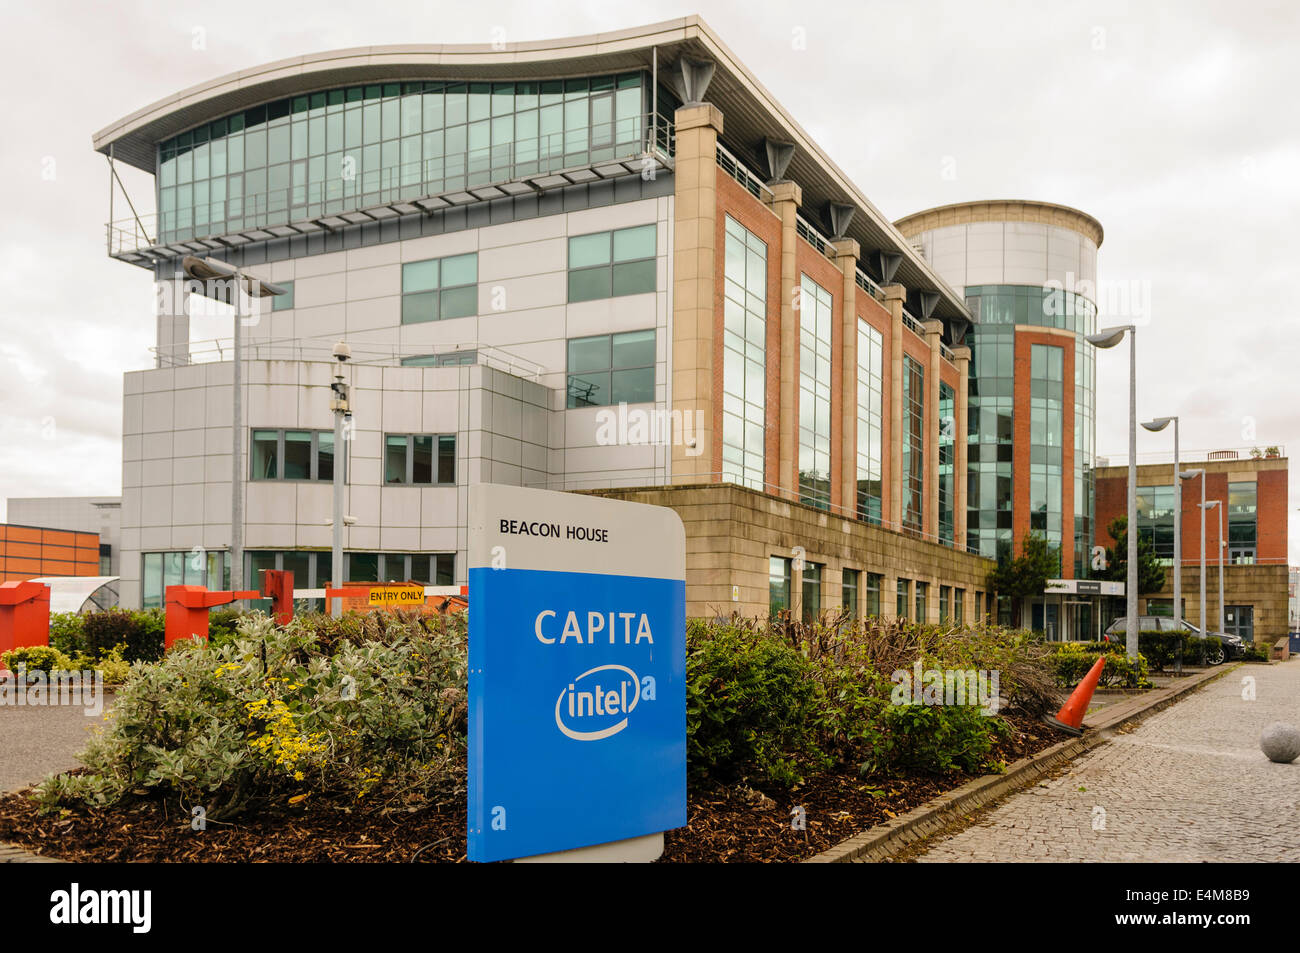 Beacon House, Belfast, the Northern Ireland office for Capita - Stock Image